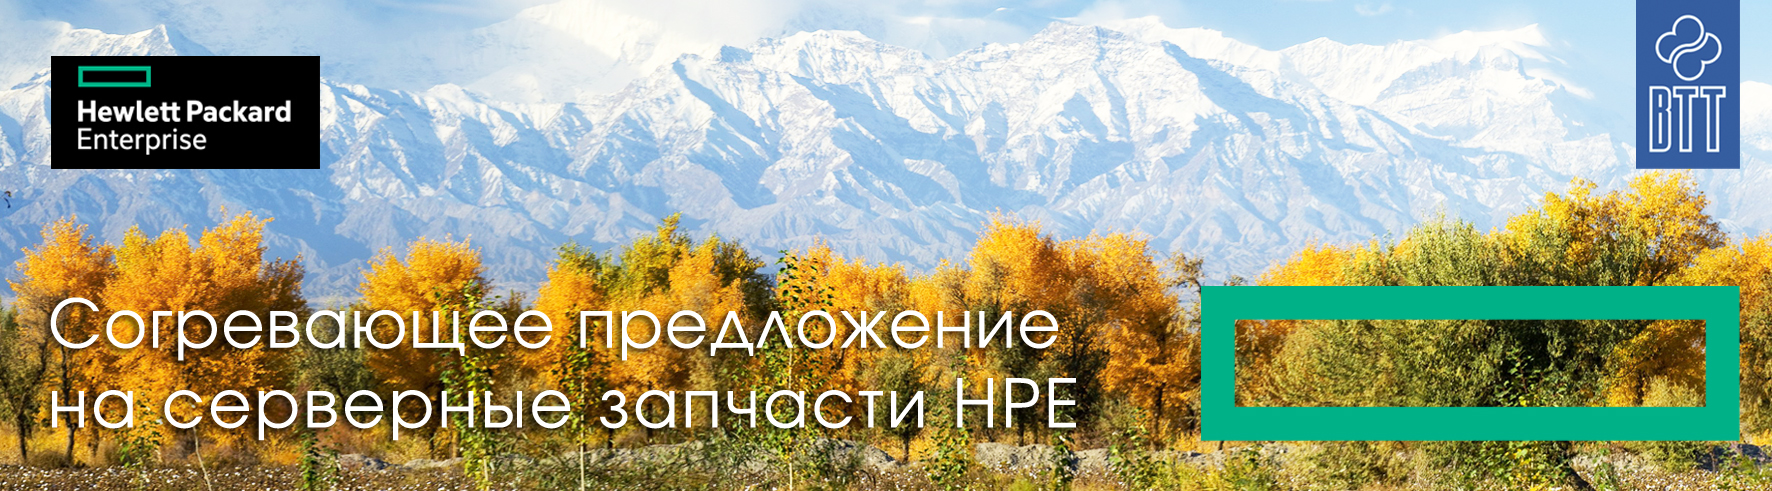 Hewlett Packard Enterprise_баннер.jpg